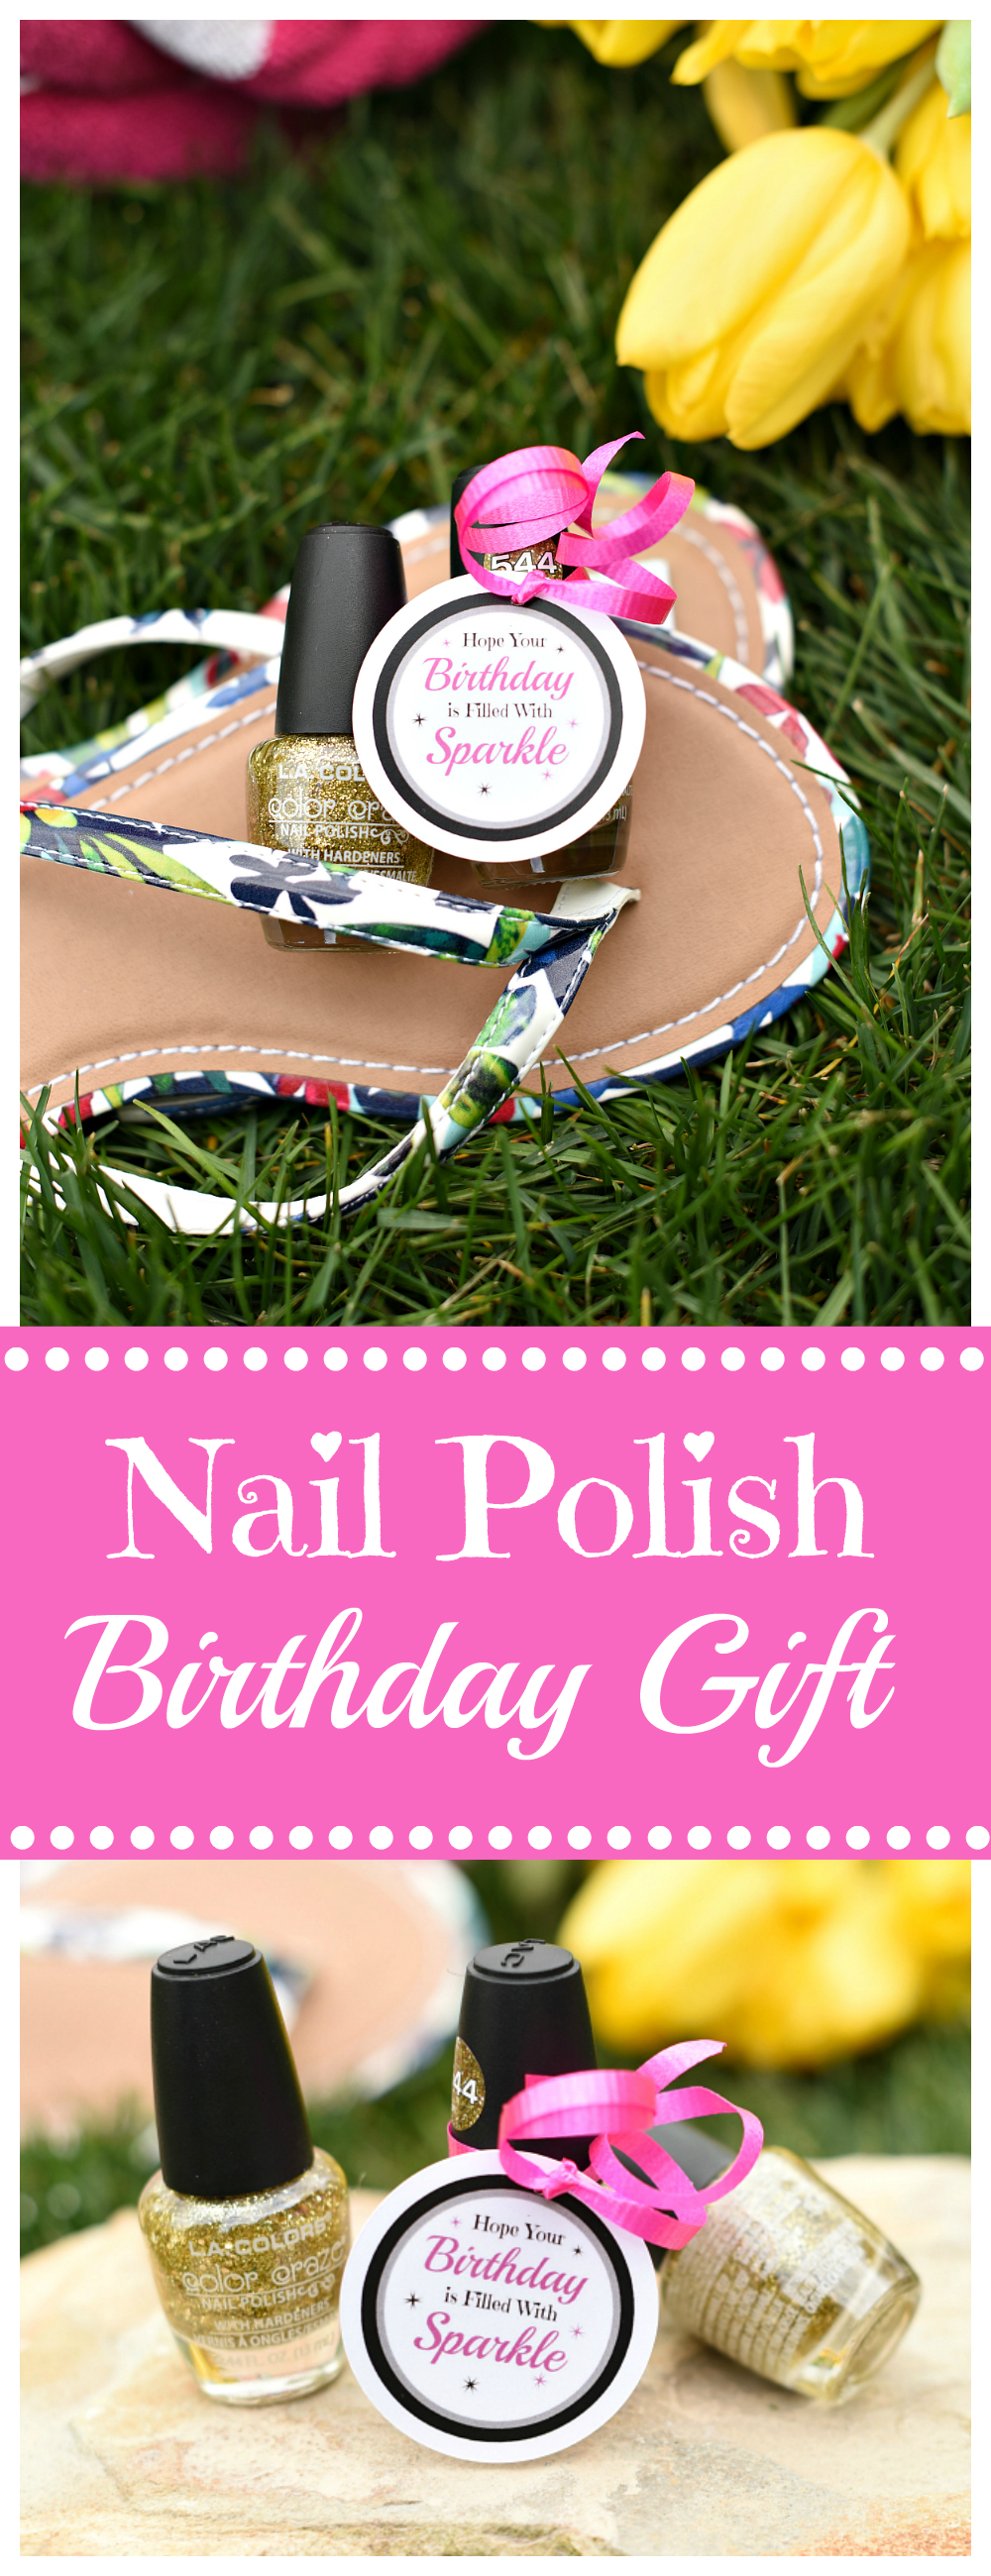 Cute Nail Polish Birthday Gift for Friends-A simple birthday gift idea that they will love. #birthdaygifts #giftideas#birthdays